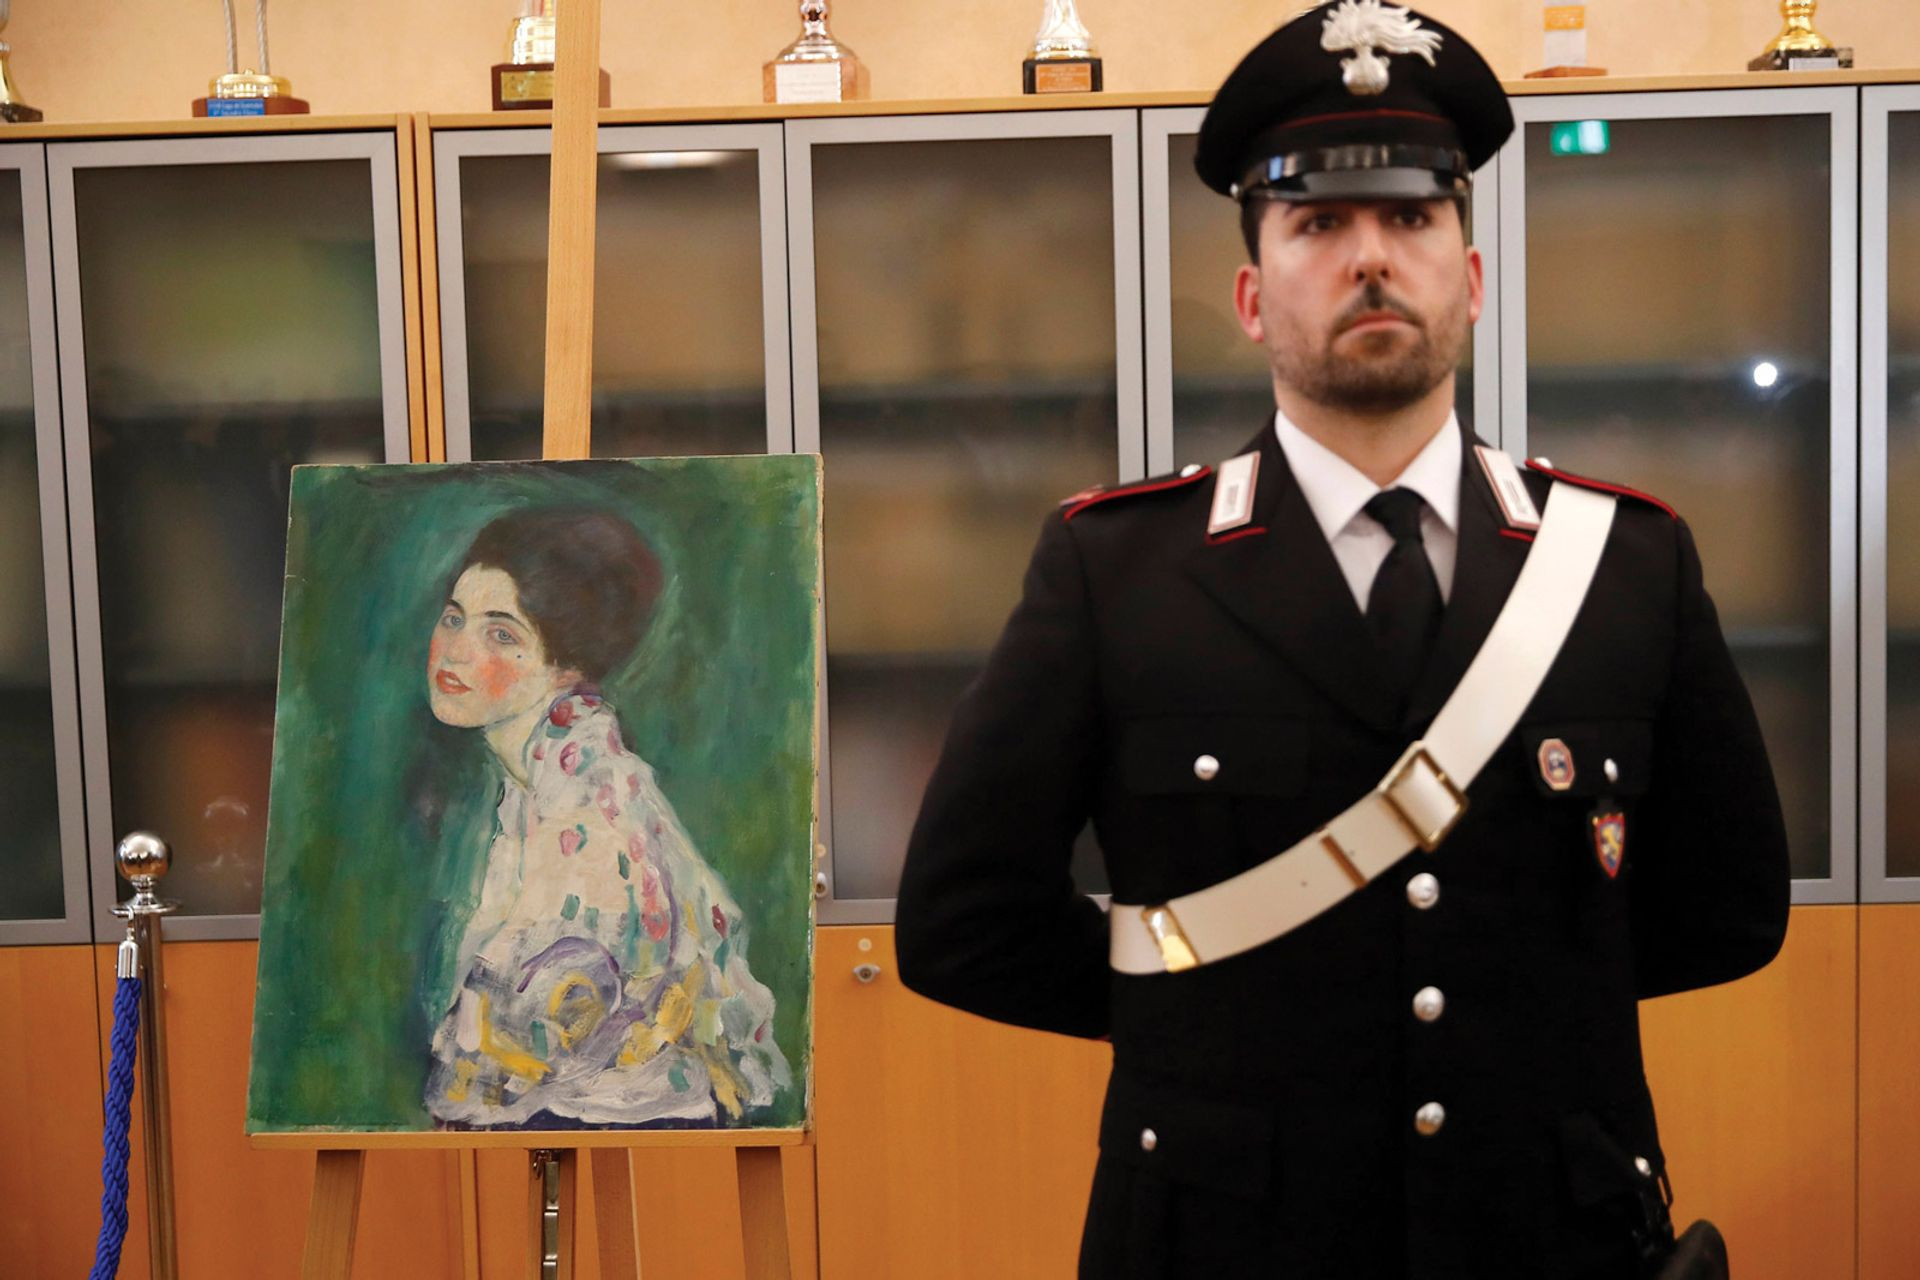 Gustav Klimt's Portrait of a Lady (1916-17) was found inside a bag by gardeners clearing ivy from a wall at the Ricci Oddi gallery in Piacenza, Italy, in December 2019. It had been missing for 20 years © Rex Shutterstock